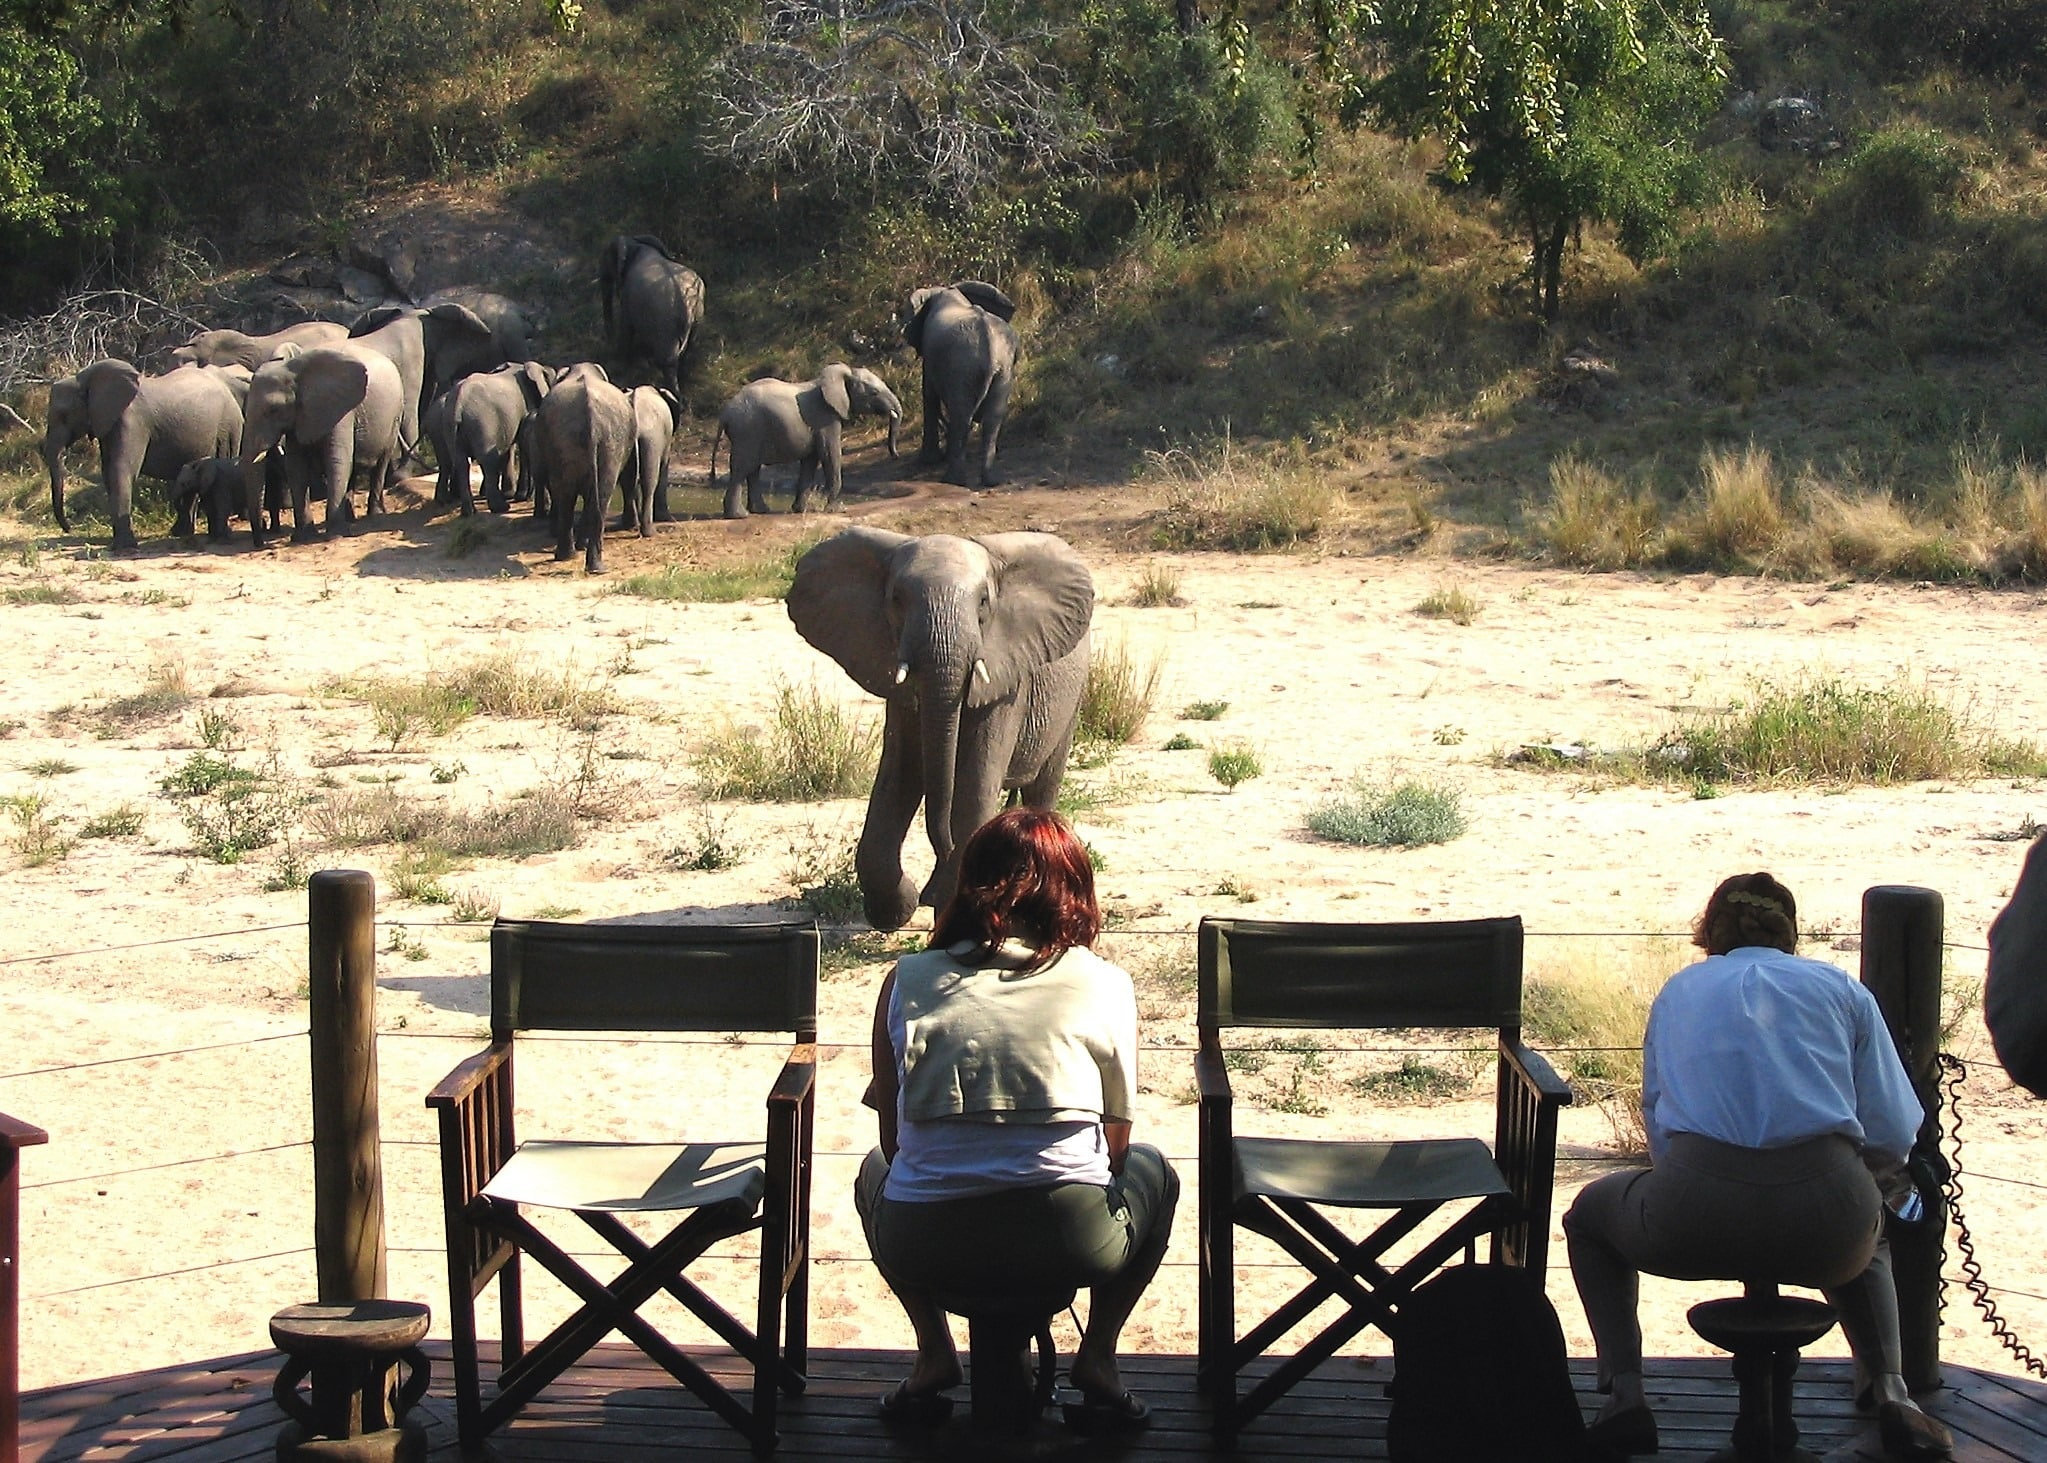 Elephants from Rhino Post Lodge